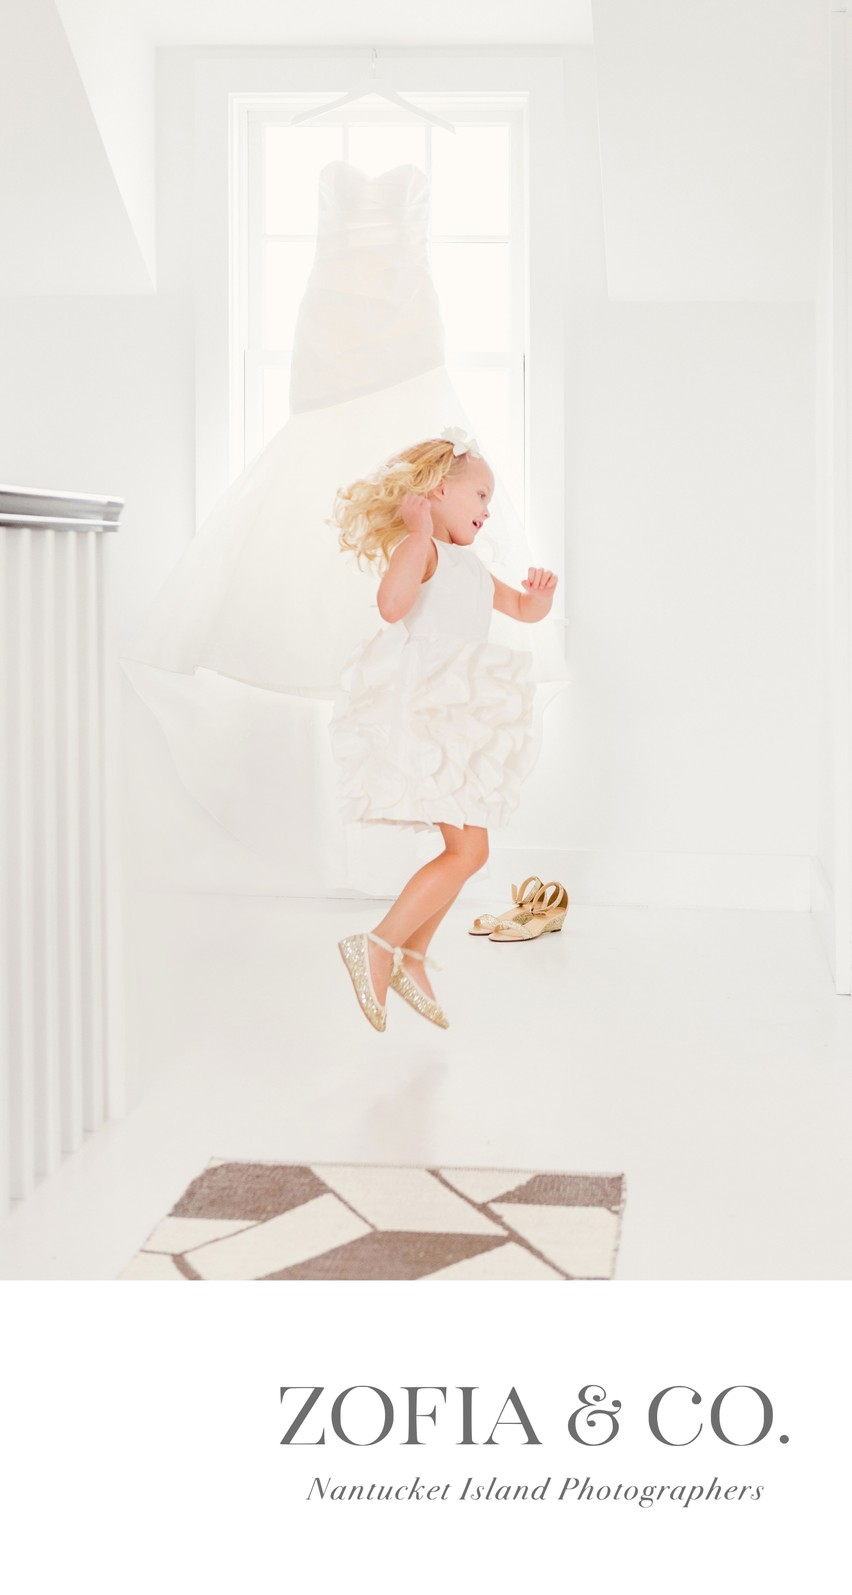 Nantucket Flower Girl jumping in front of bridal gown